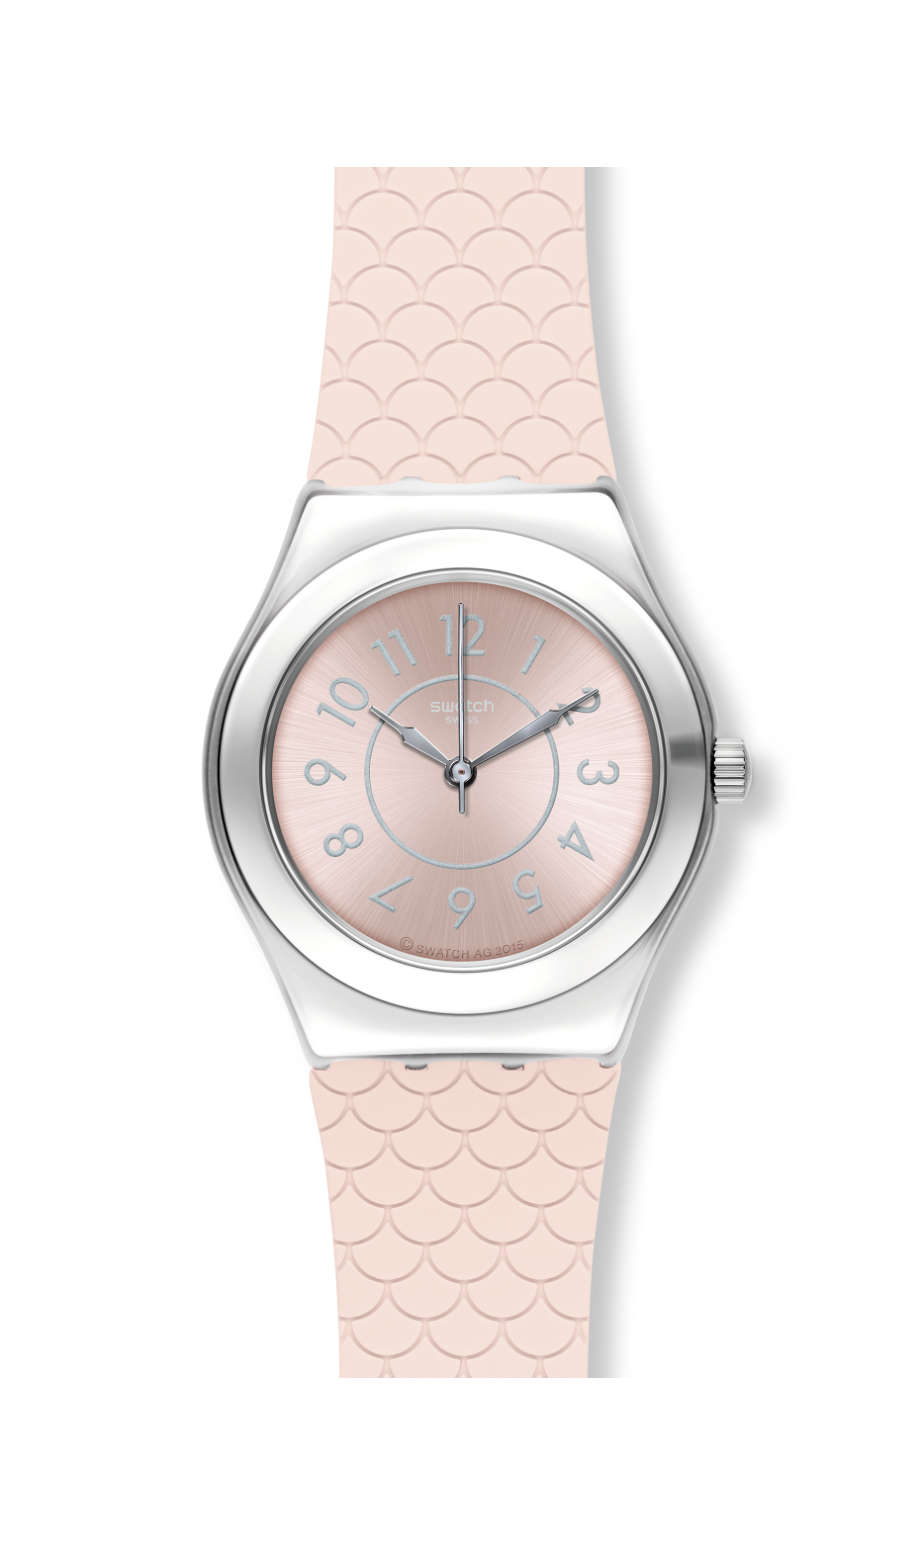 Swatch - SWATCH BY COCO HO - 1